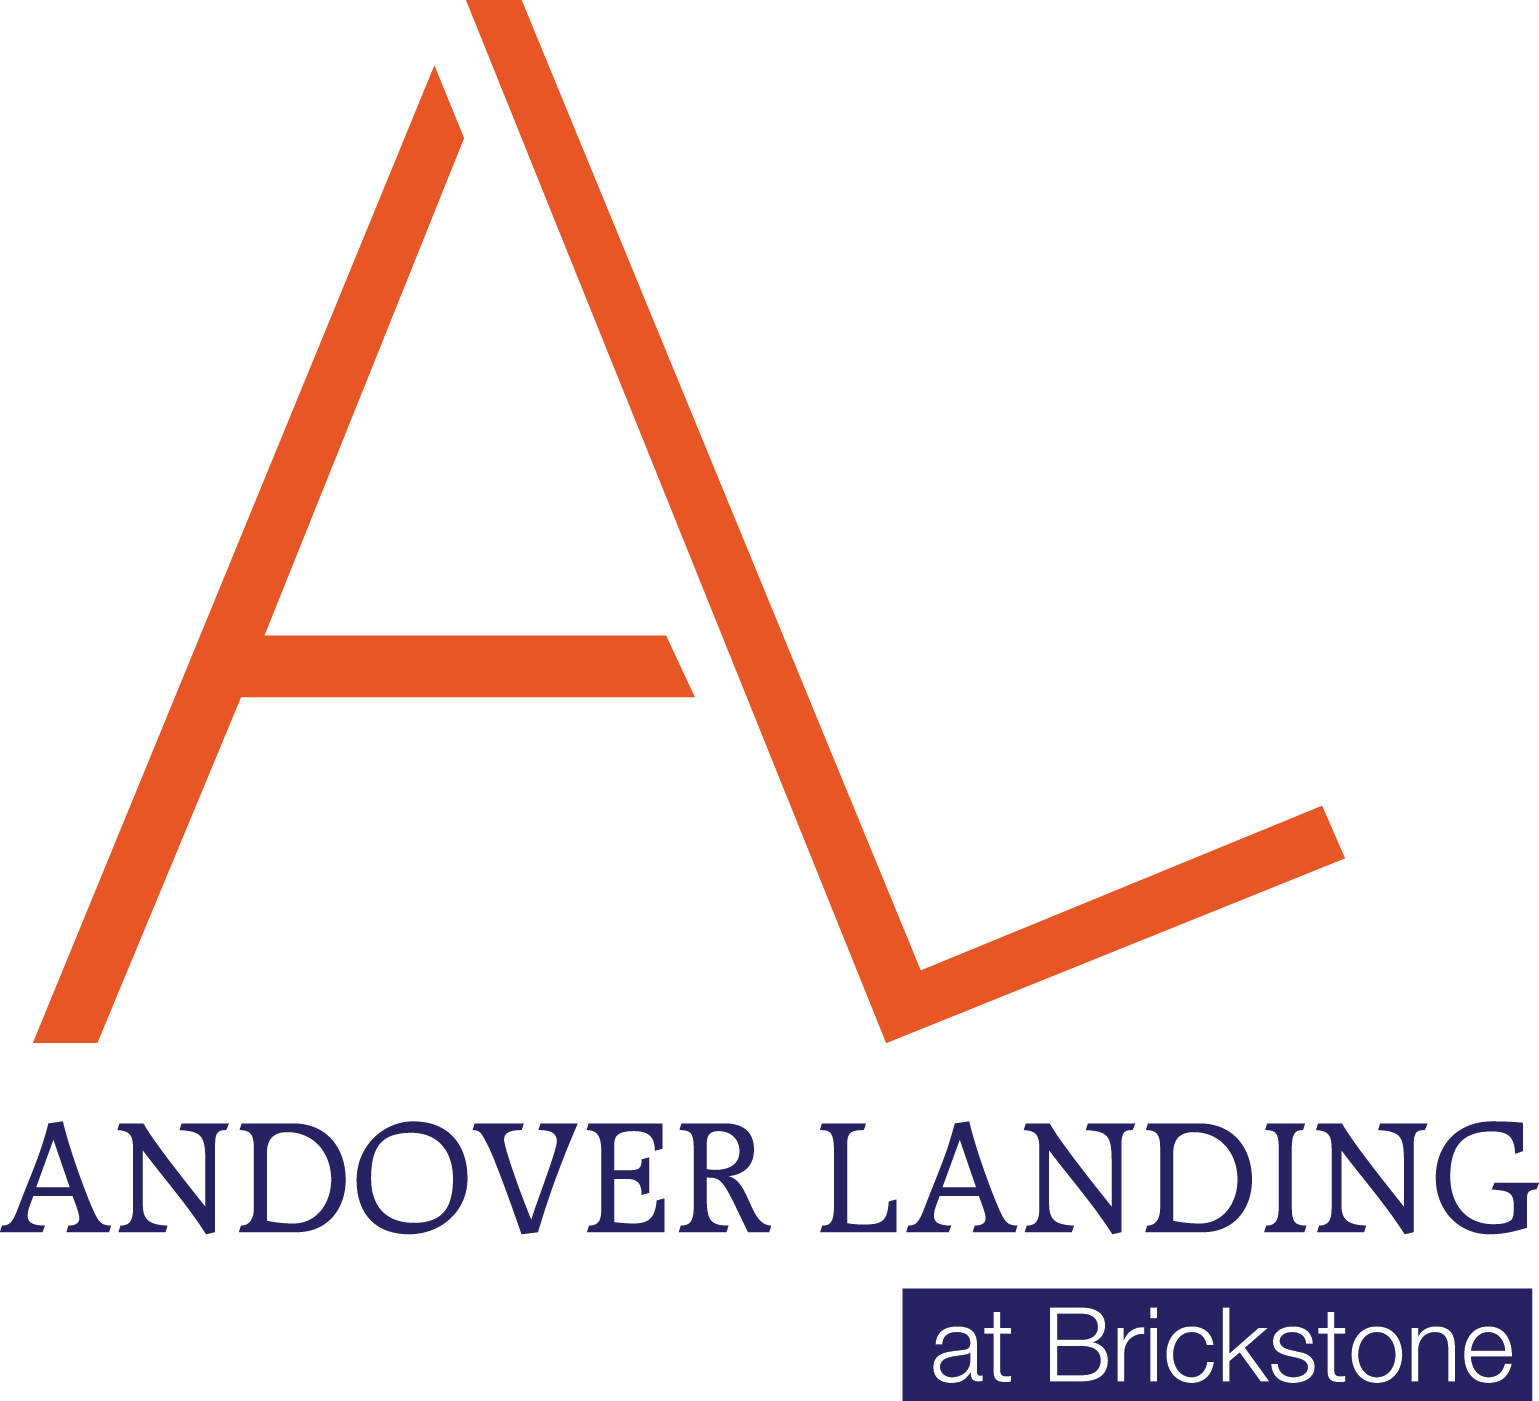 Andover Landing at Brickstone